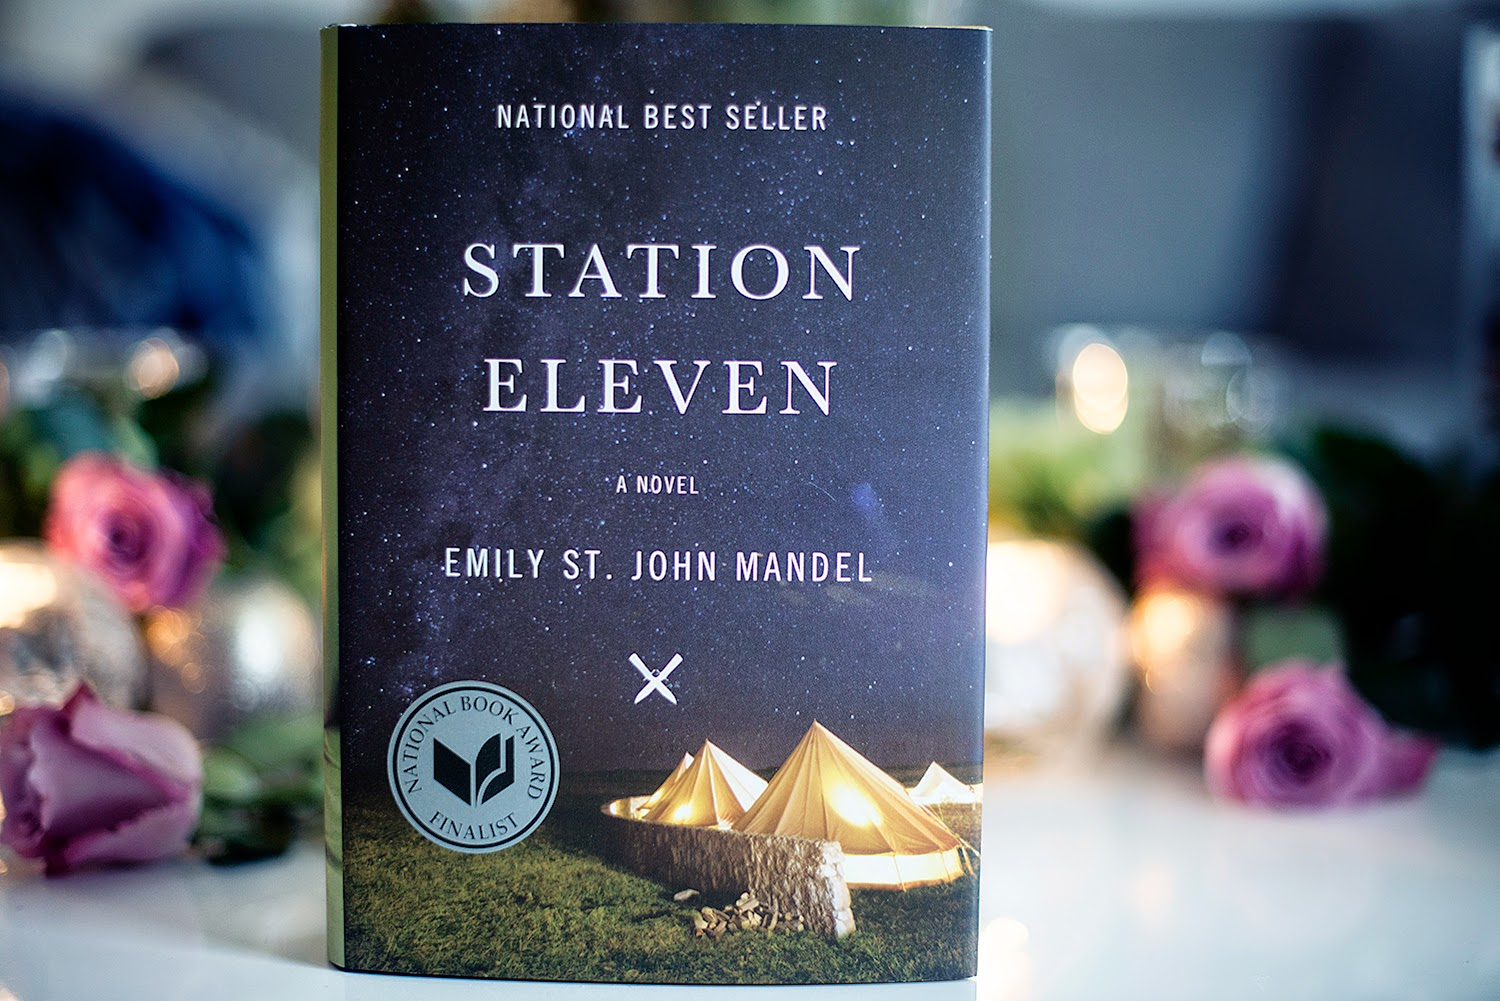 On Tuesday 28th July, Diletta De Cristofaro Discussed Station Eleven By Emily  St John Mandel With Fran Bigman, Niall Harrison And Dan King